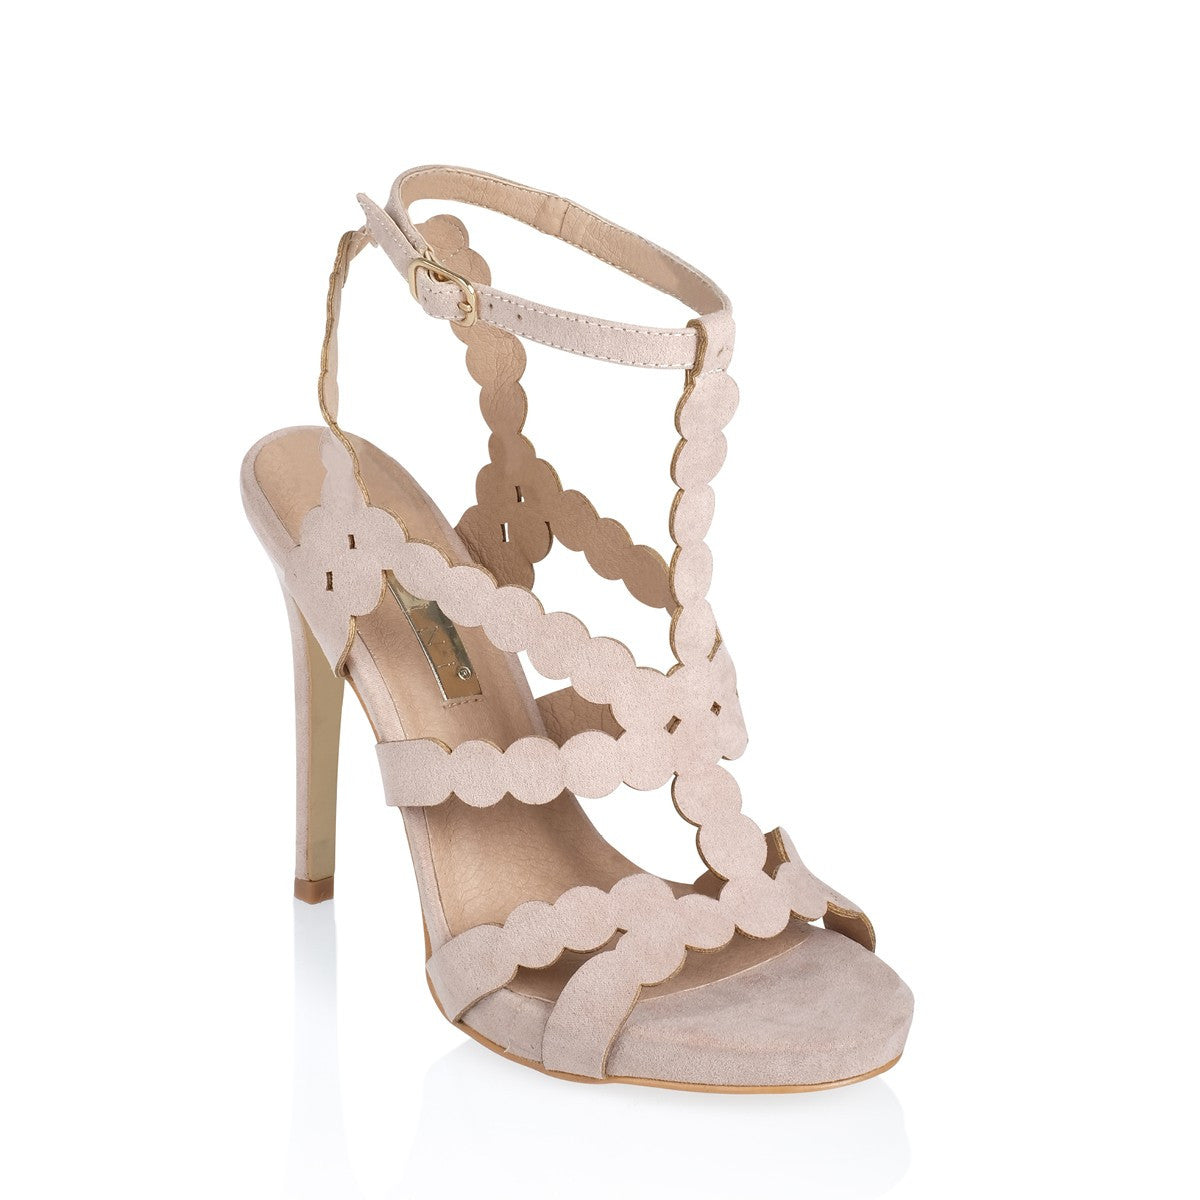 Daria blush strappy heels